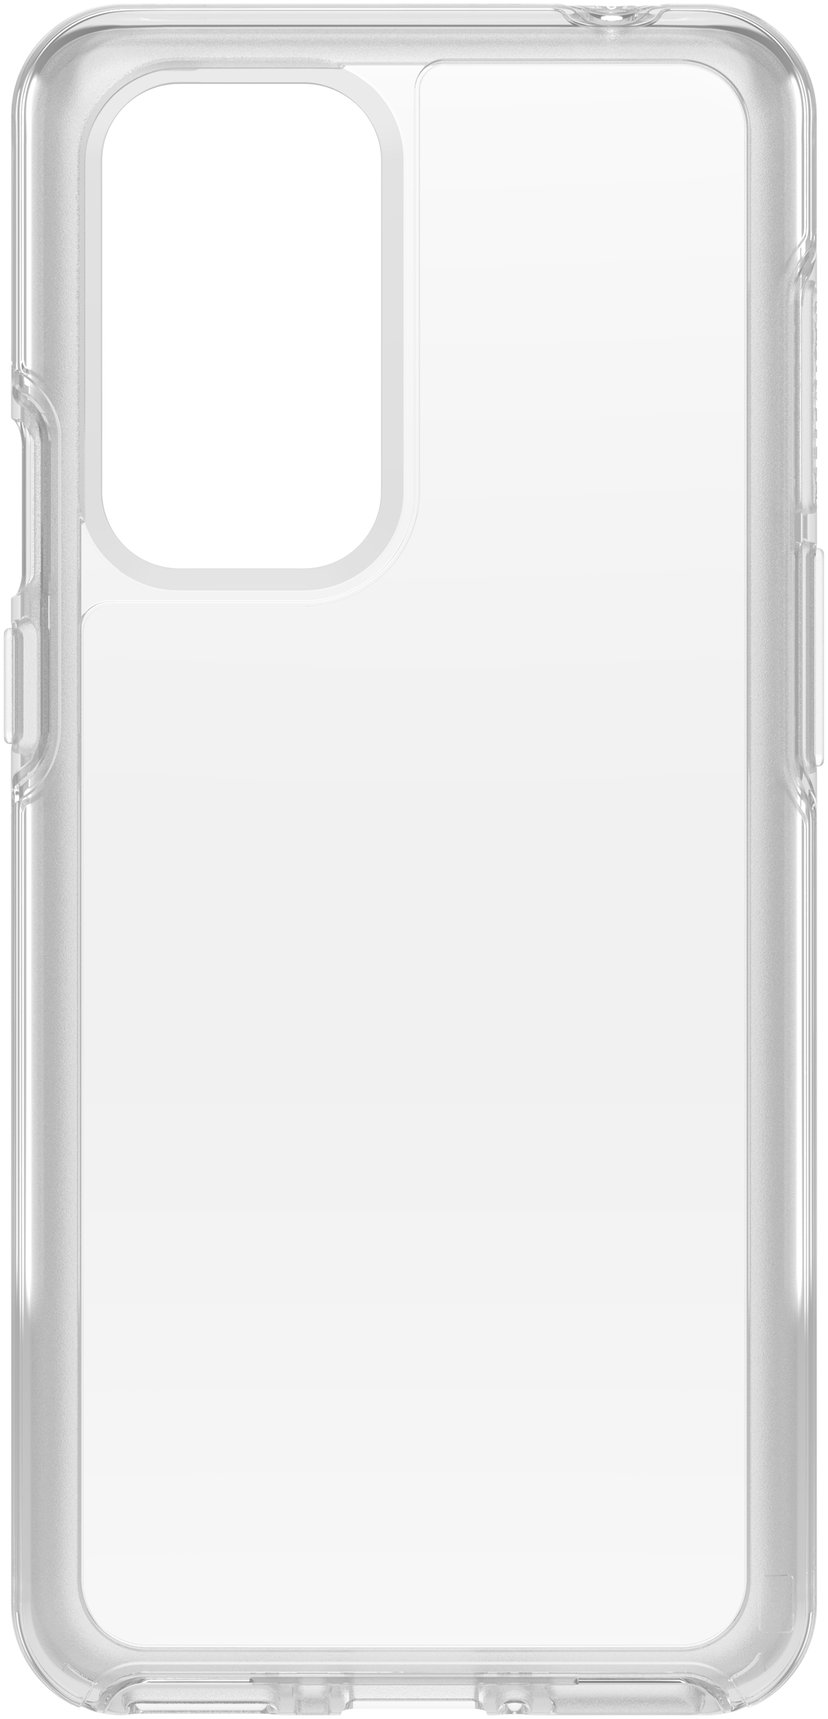 Otterbox Symmetry Clear Transparent OnePlus 9 Pro